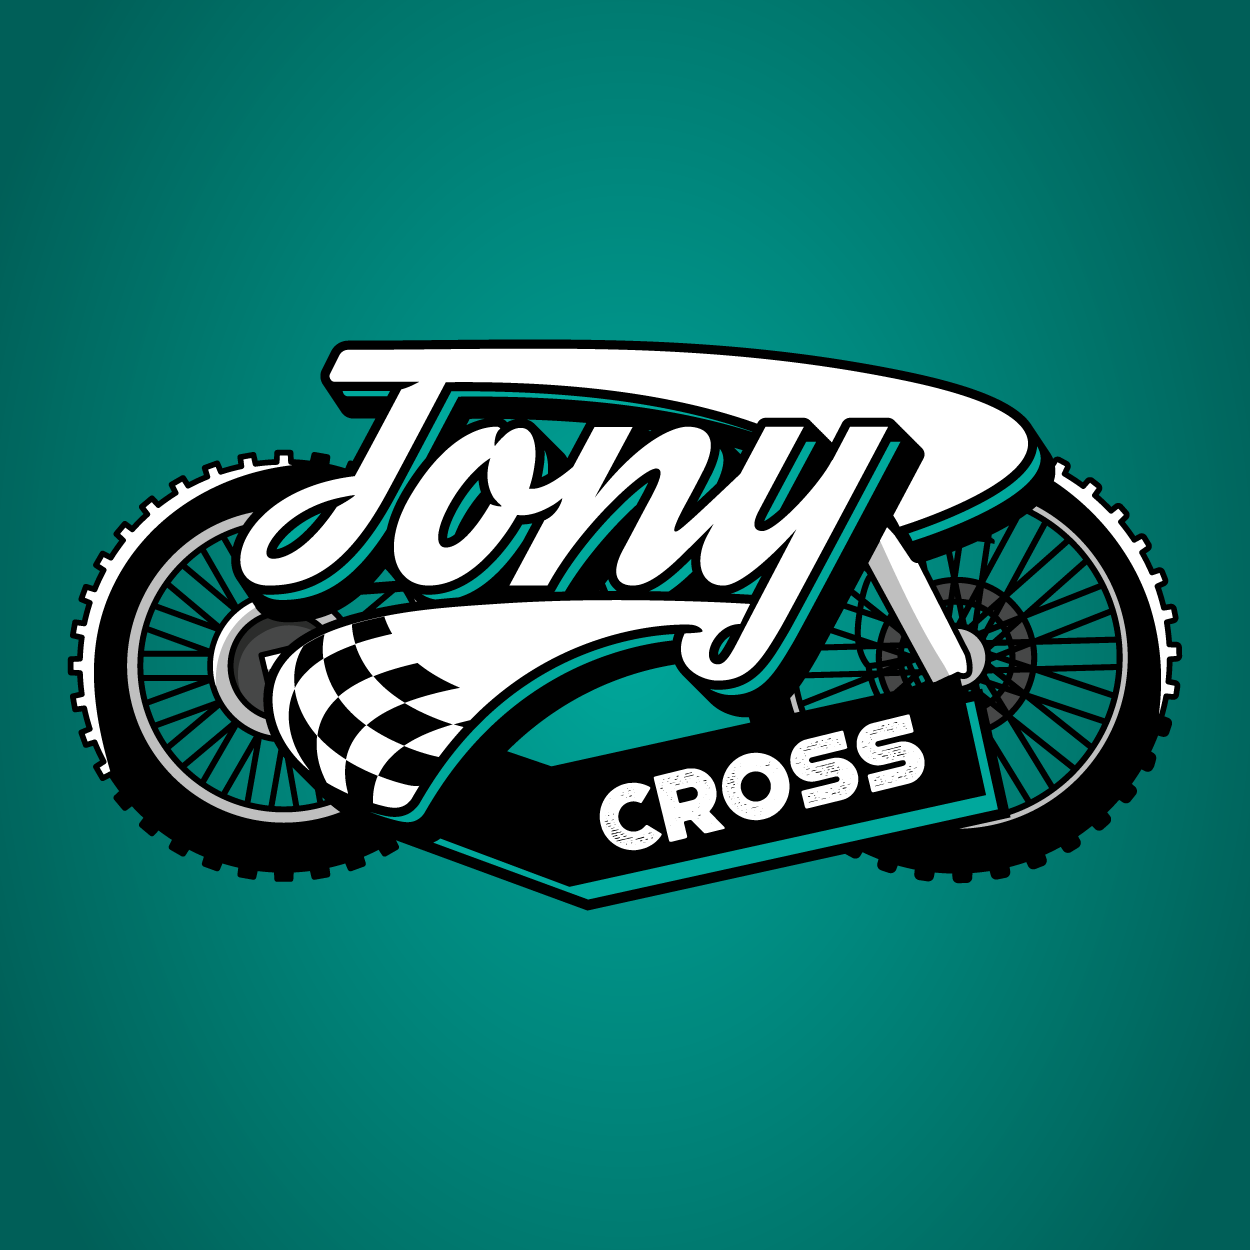 Tony Cross - Logo